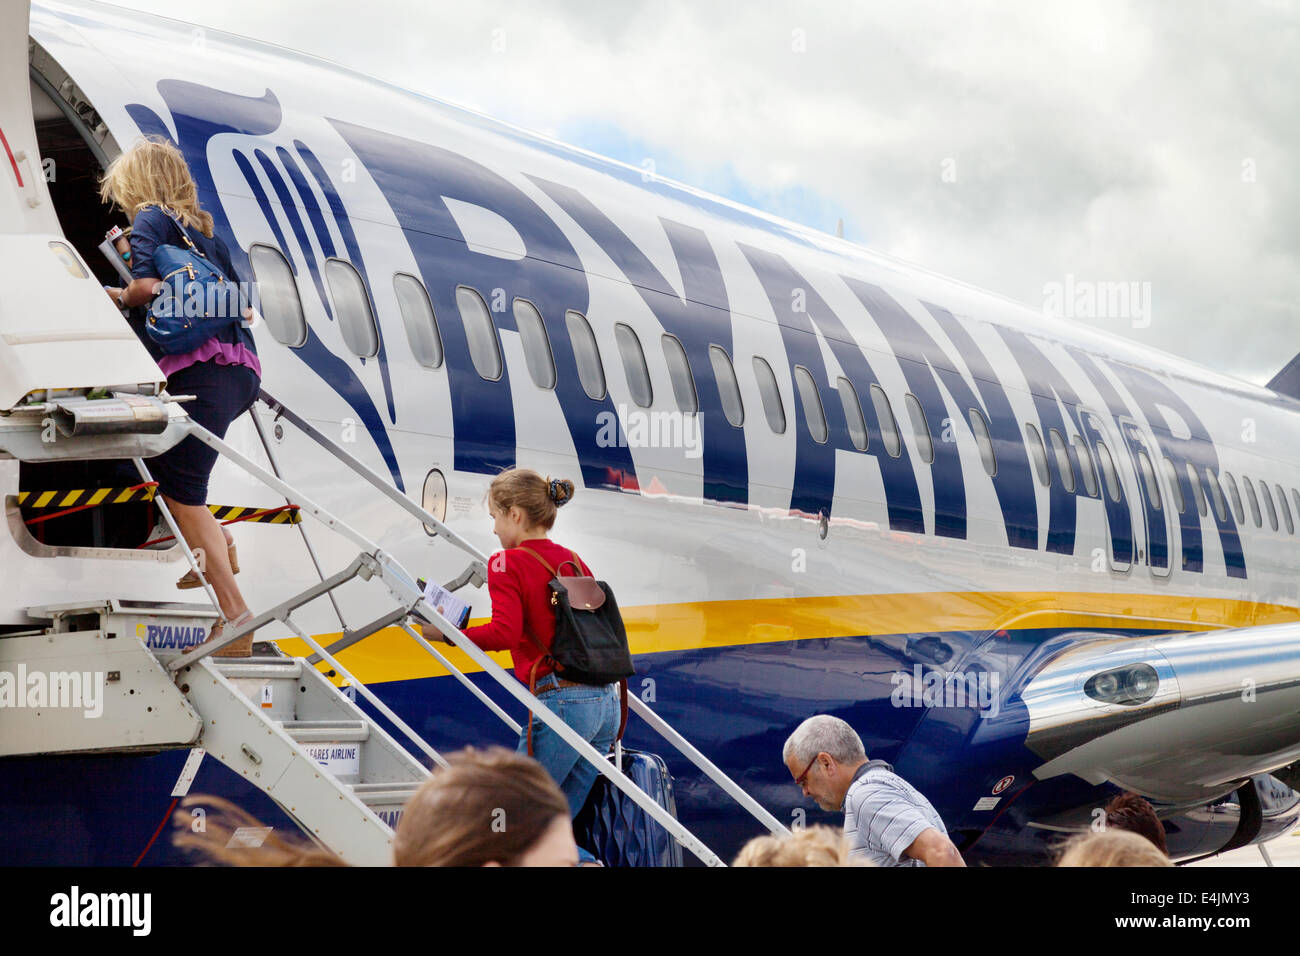 Passengers boarding a Ryanair plane at Stansted airport, London UK - Stock Image